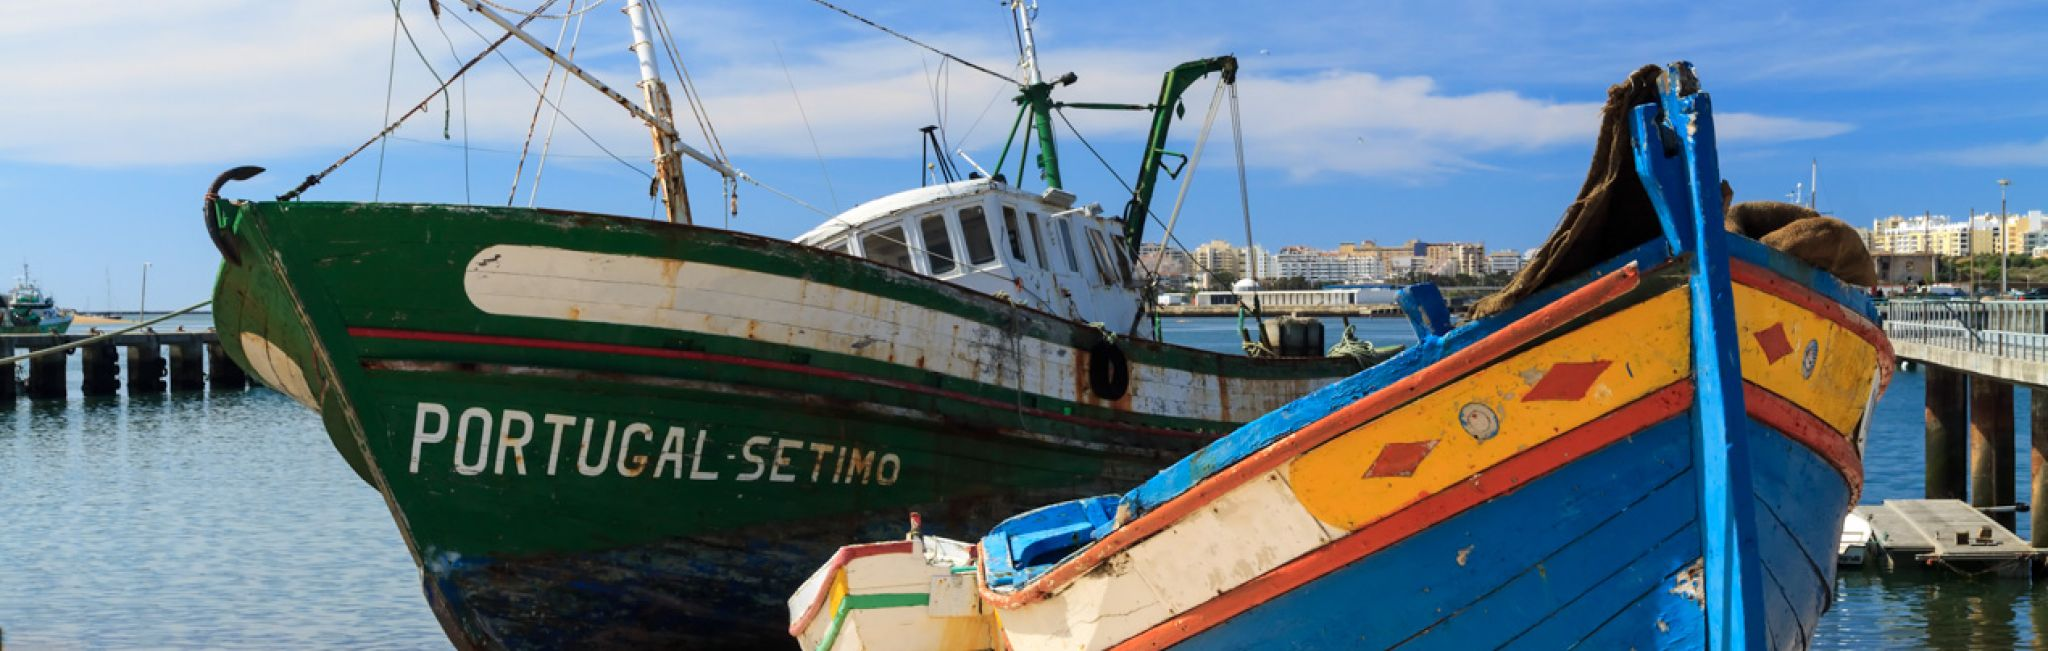 Colorful, old fishing boats in Algarve, Portugal.